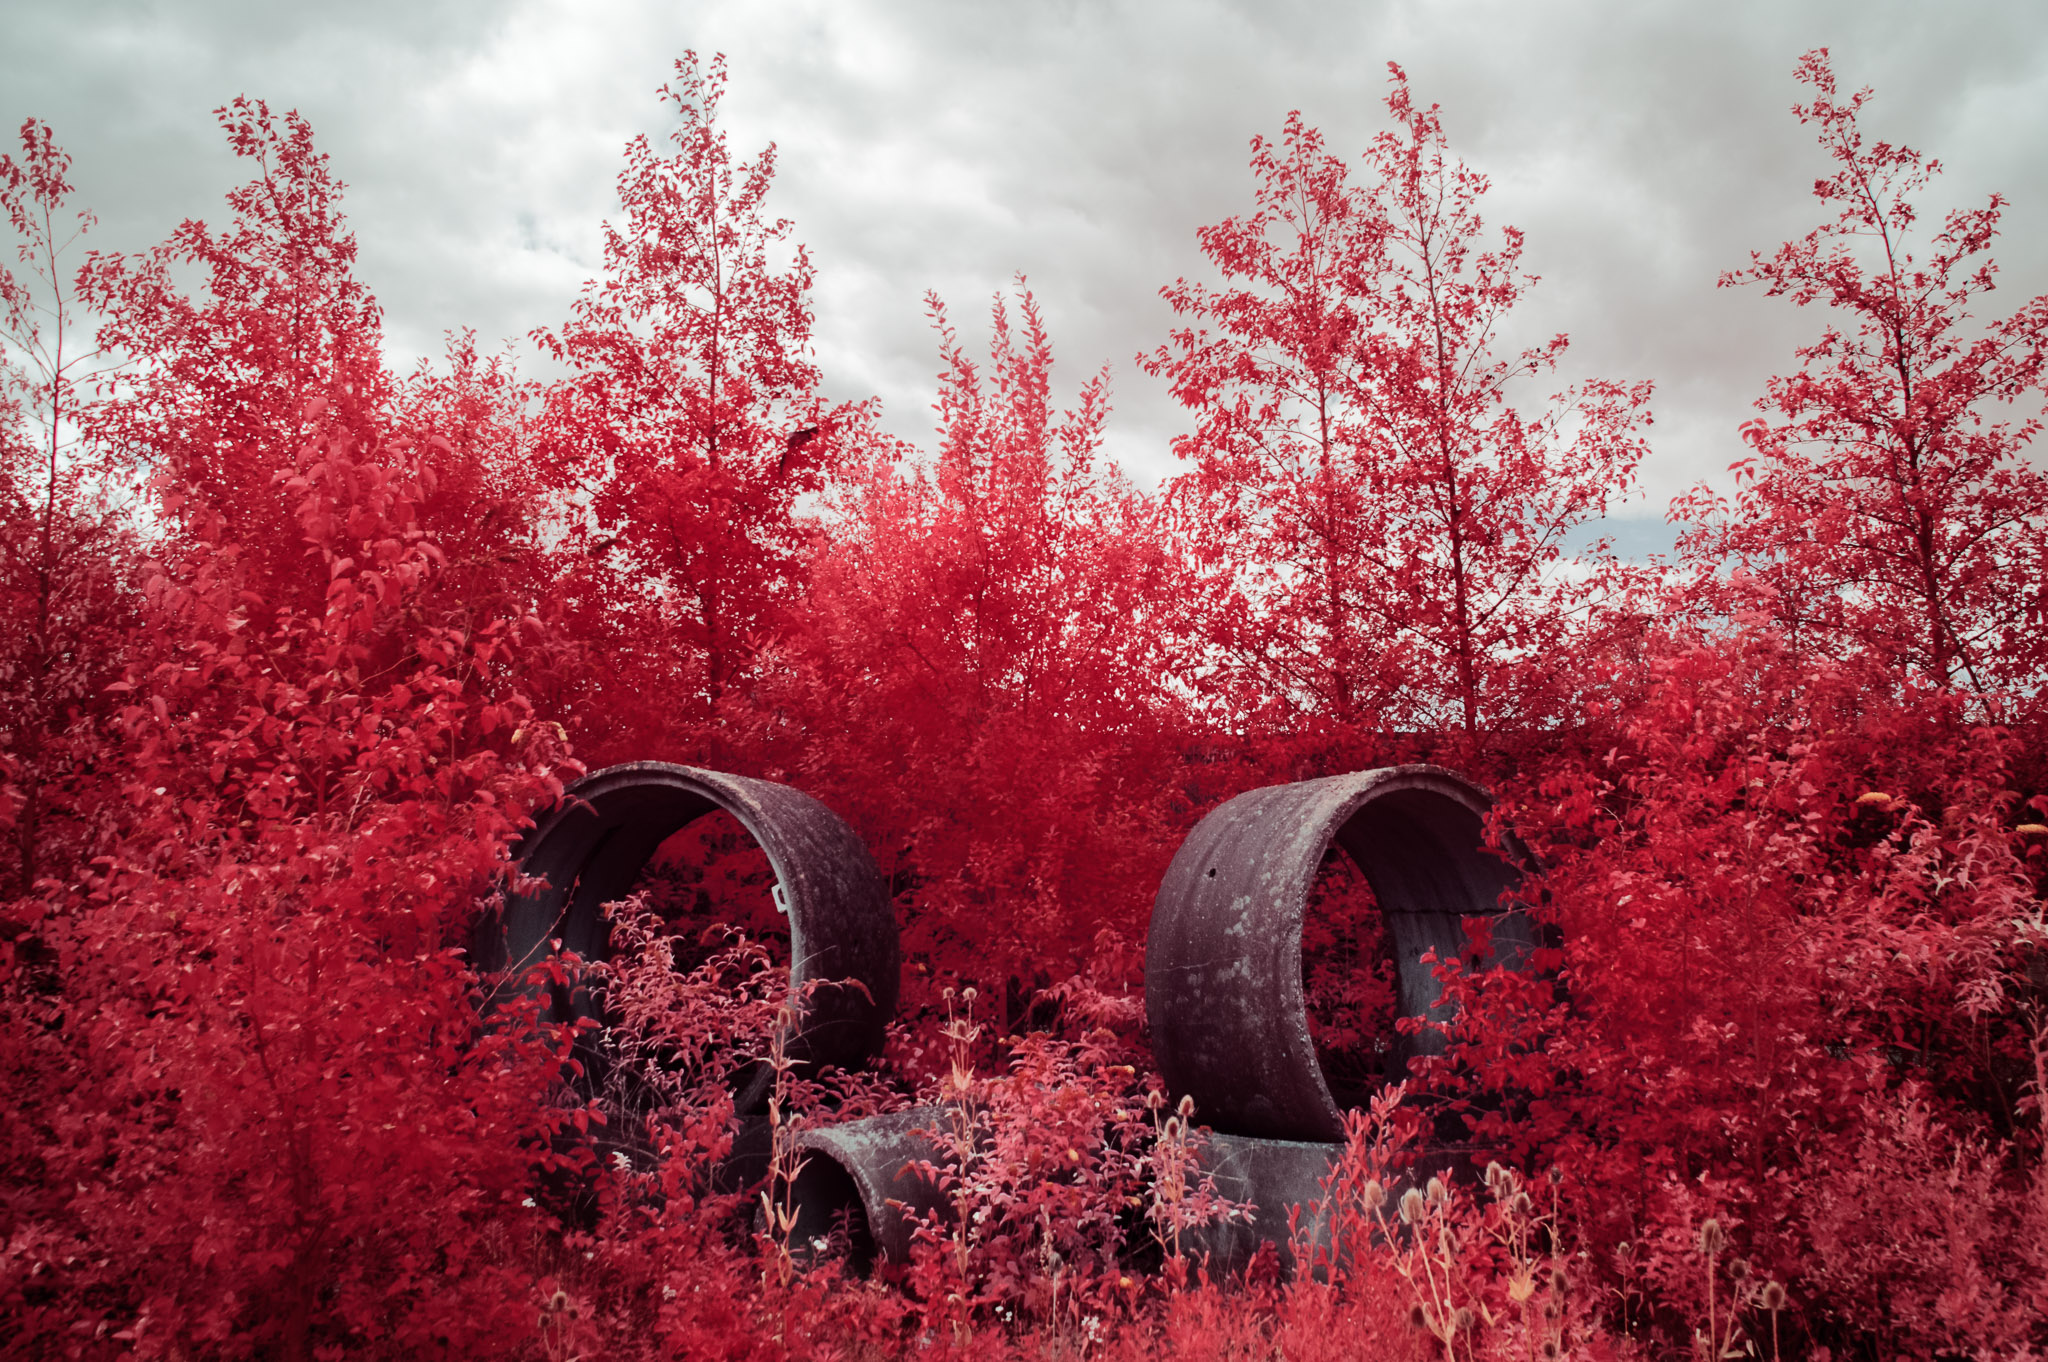 Kodak EIR Colour Infrared, Edgelands, Wasteland, Sewer Pipe ©Jonny Sutton